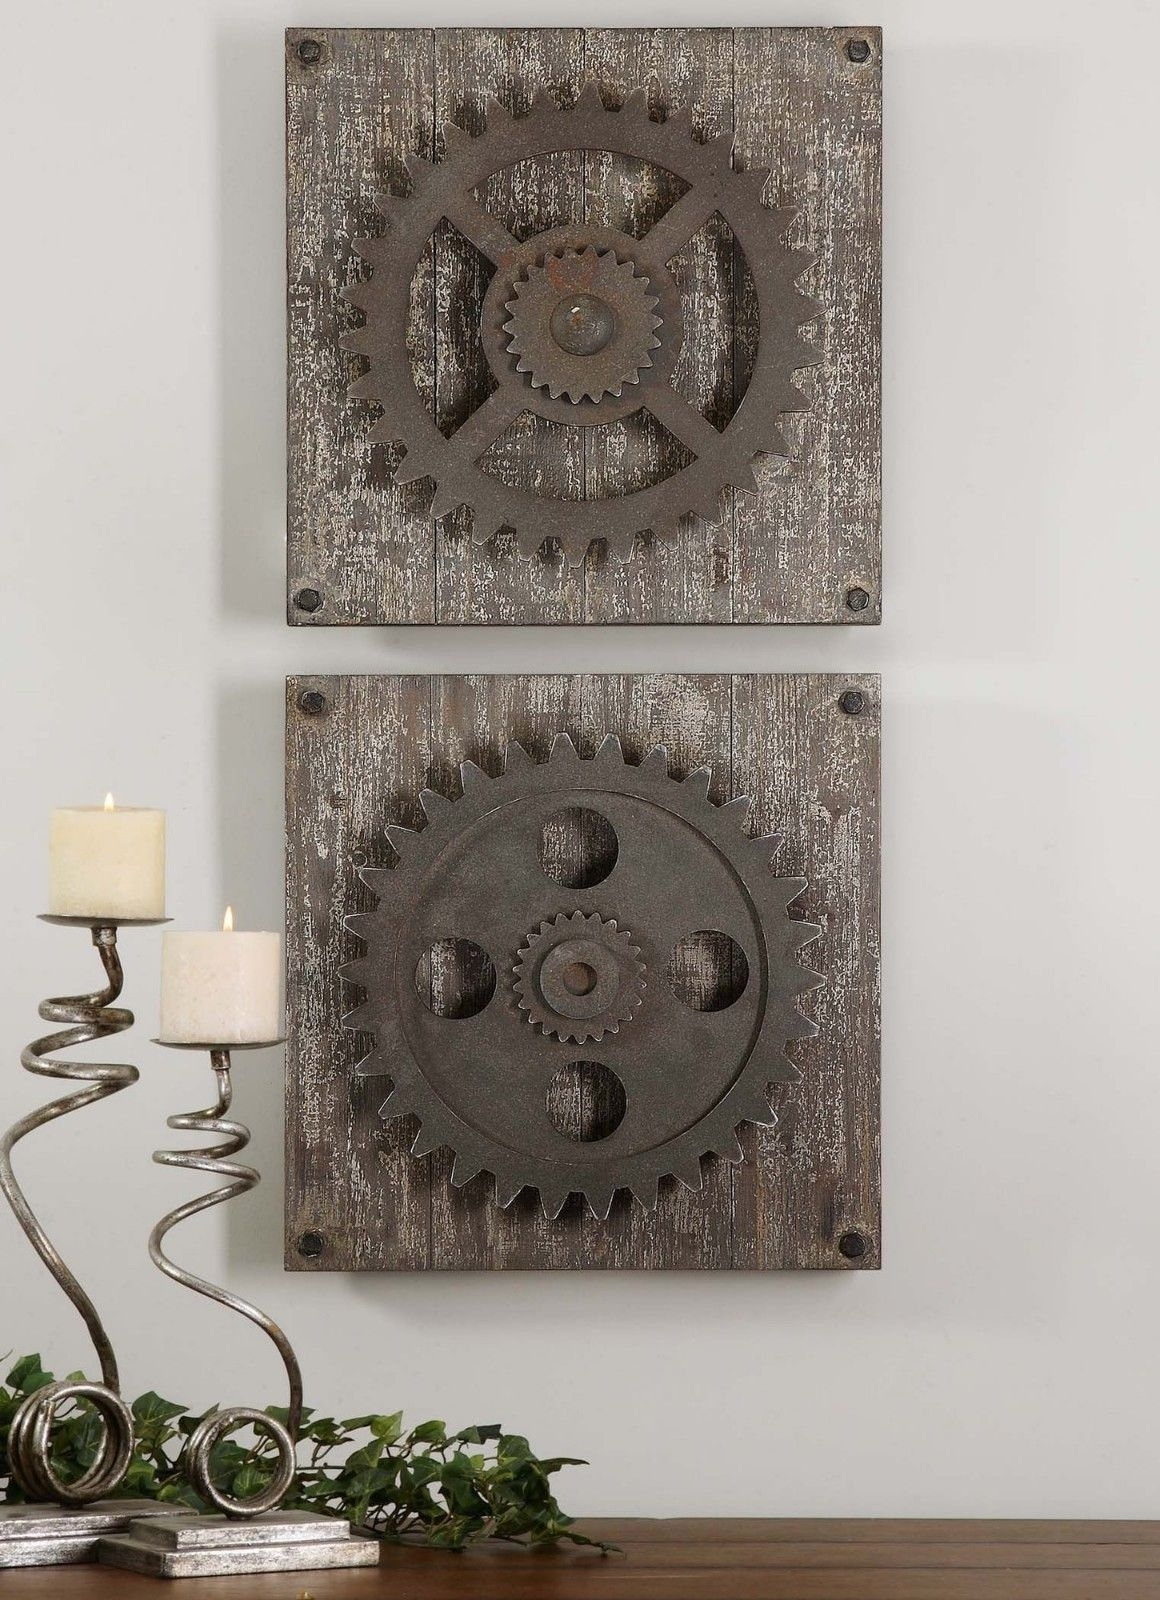 Urban Industrial Loft Steampunk Decor Rusty Gears Cogs 3D Wall Art throughout Steampunk Wall Art (Image 18 of 20)